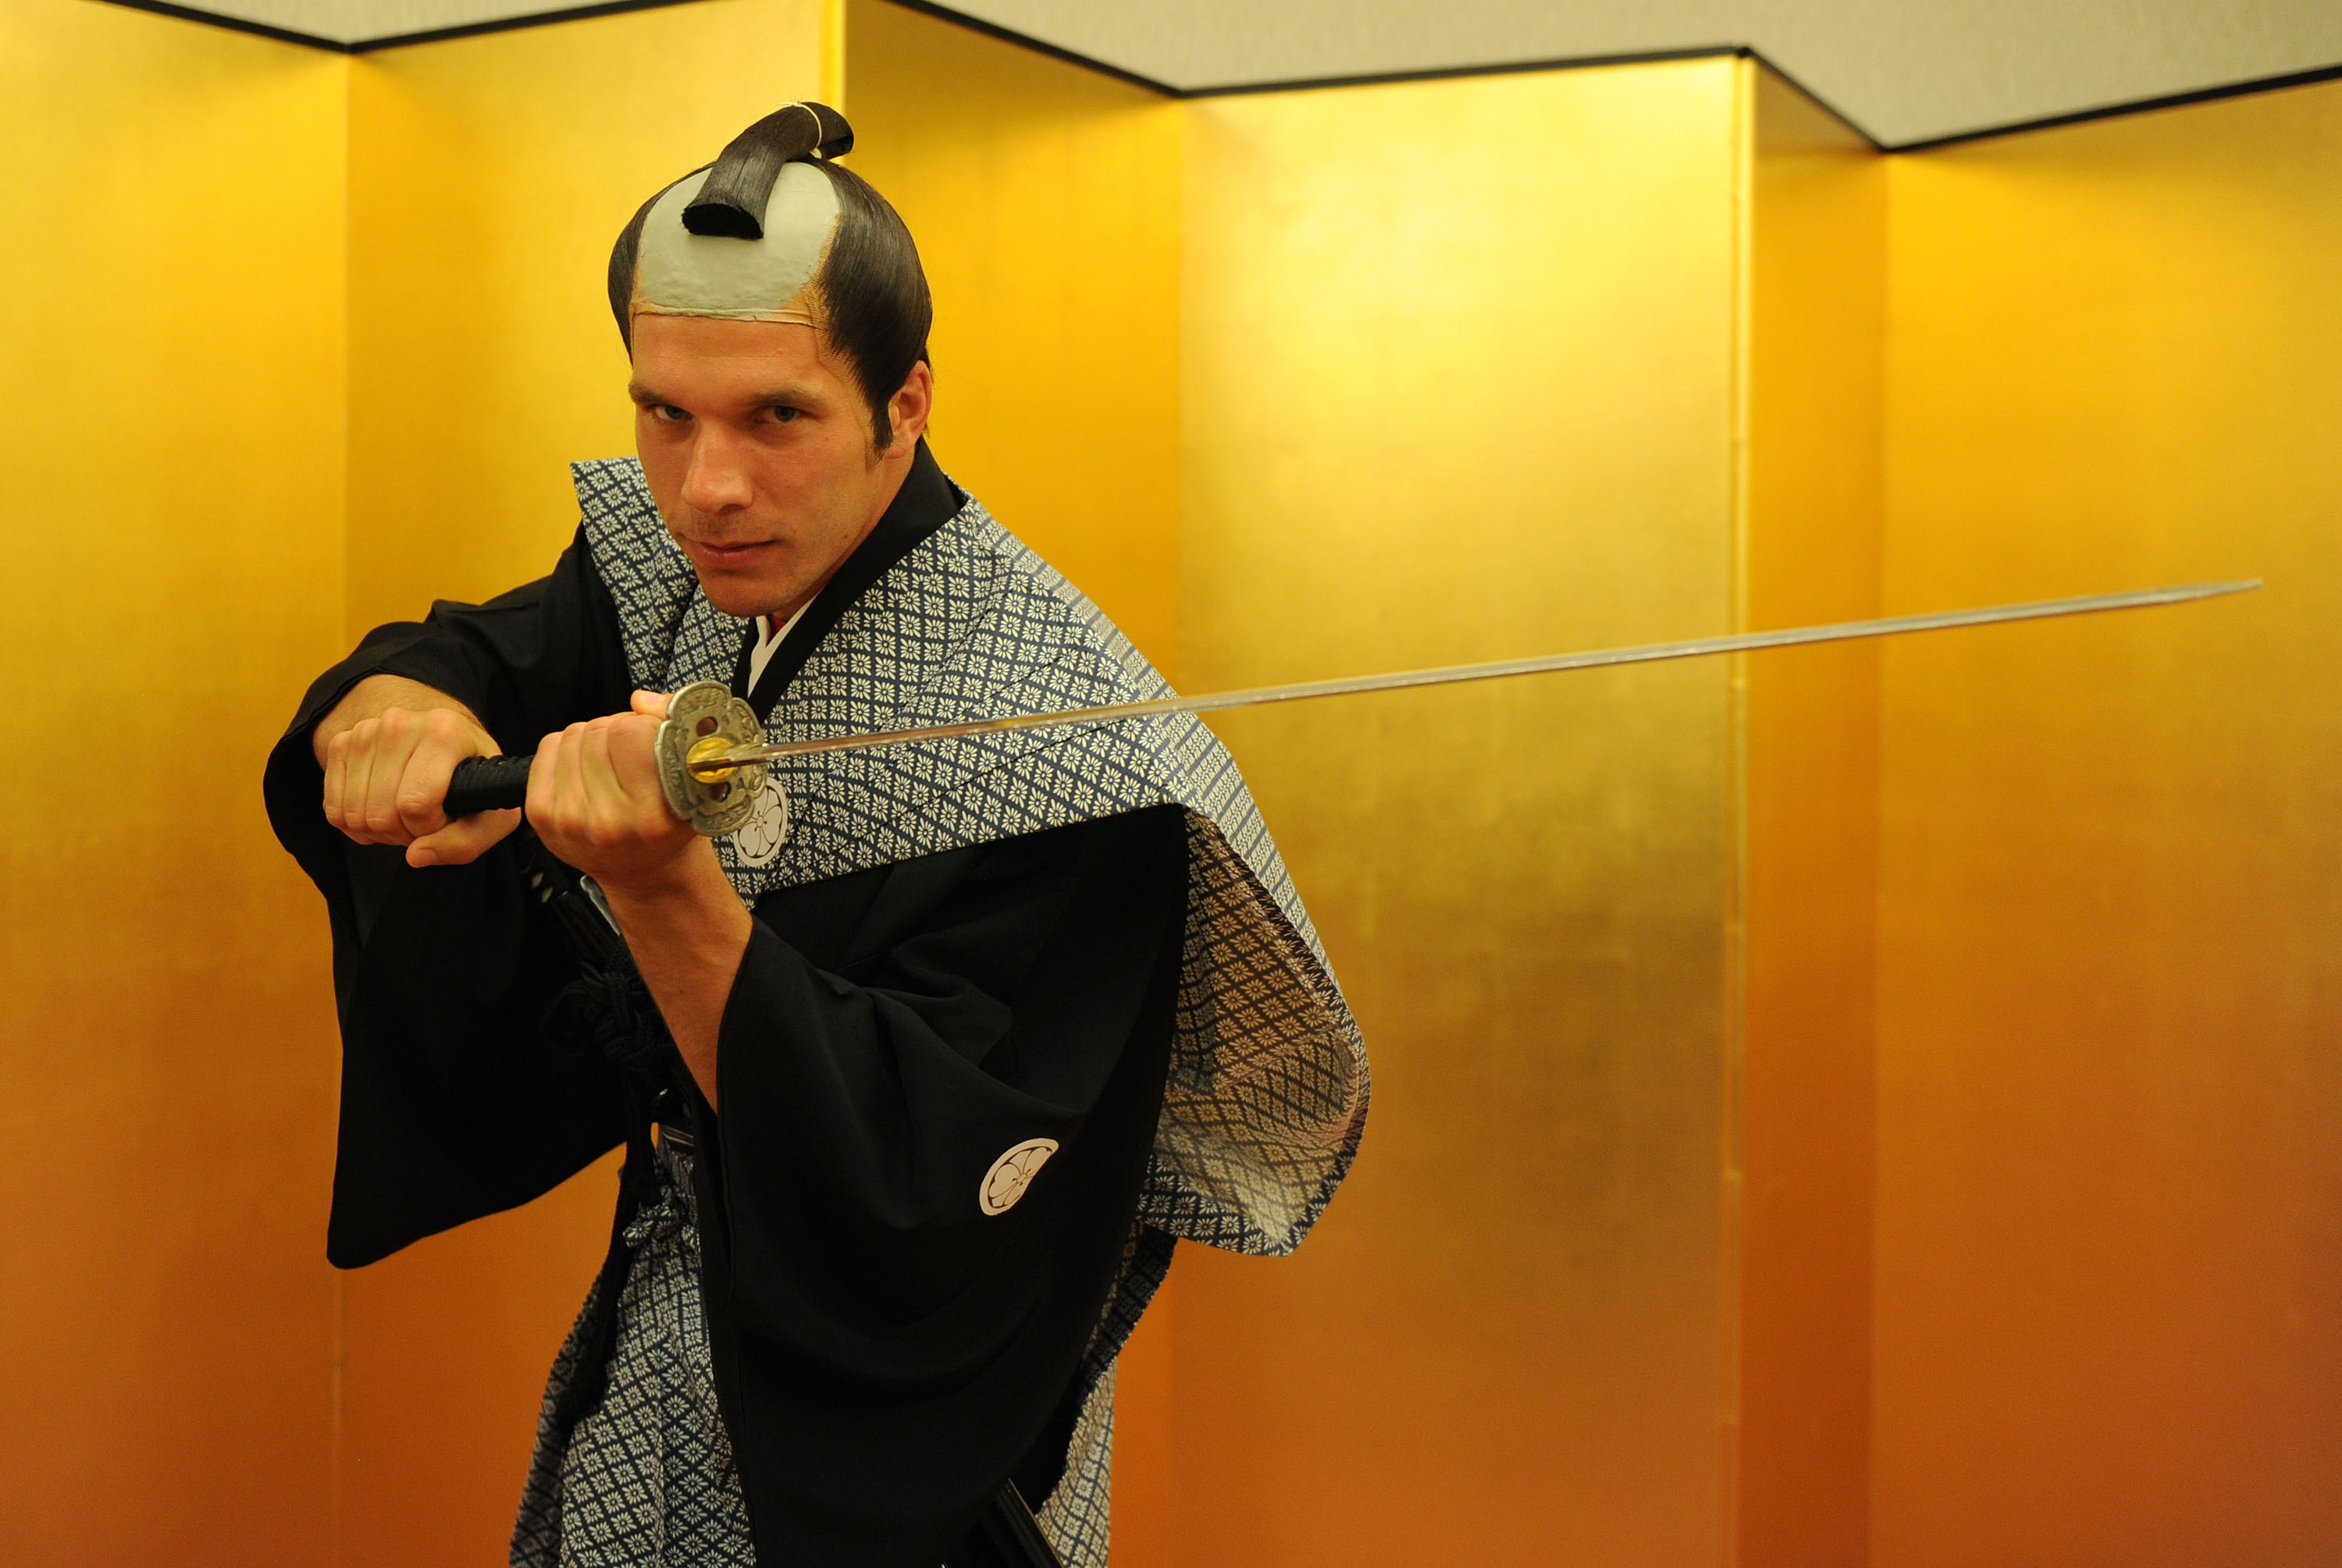 SAITAMA, JAPAN - JULY 25: (EXCLUSIVE COVERAGE) Lukas Podolski of Arsenal FC poses dressed as a Samurai Warrior in the Urawa Royal Pines Hotel in Japan for the club's pre-season Asian tour on July 25, 2013 in Saitama, Japan. (Photo by David Price/Arsenal FC via Getty Images)